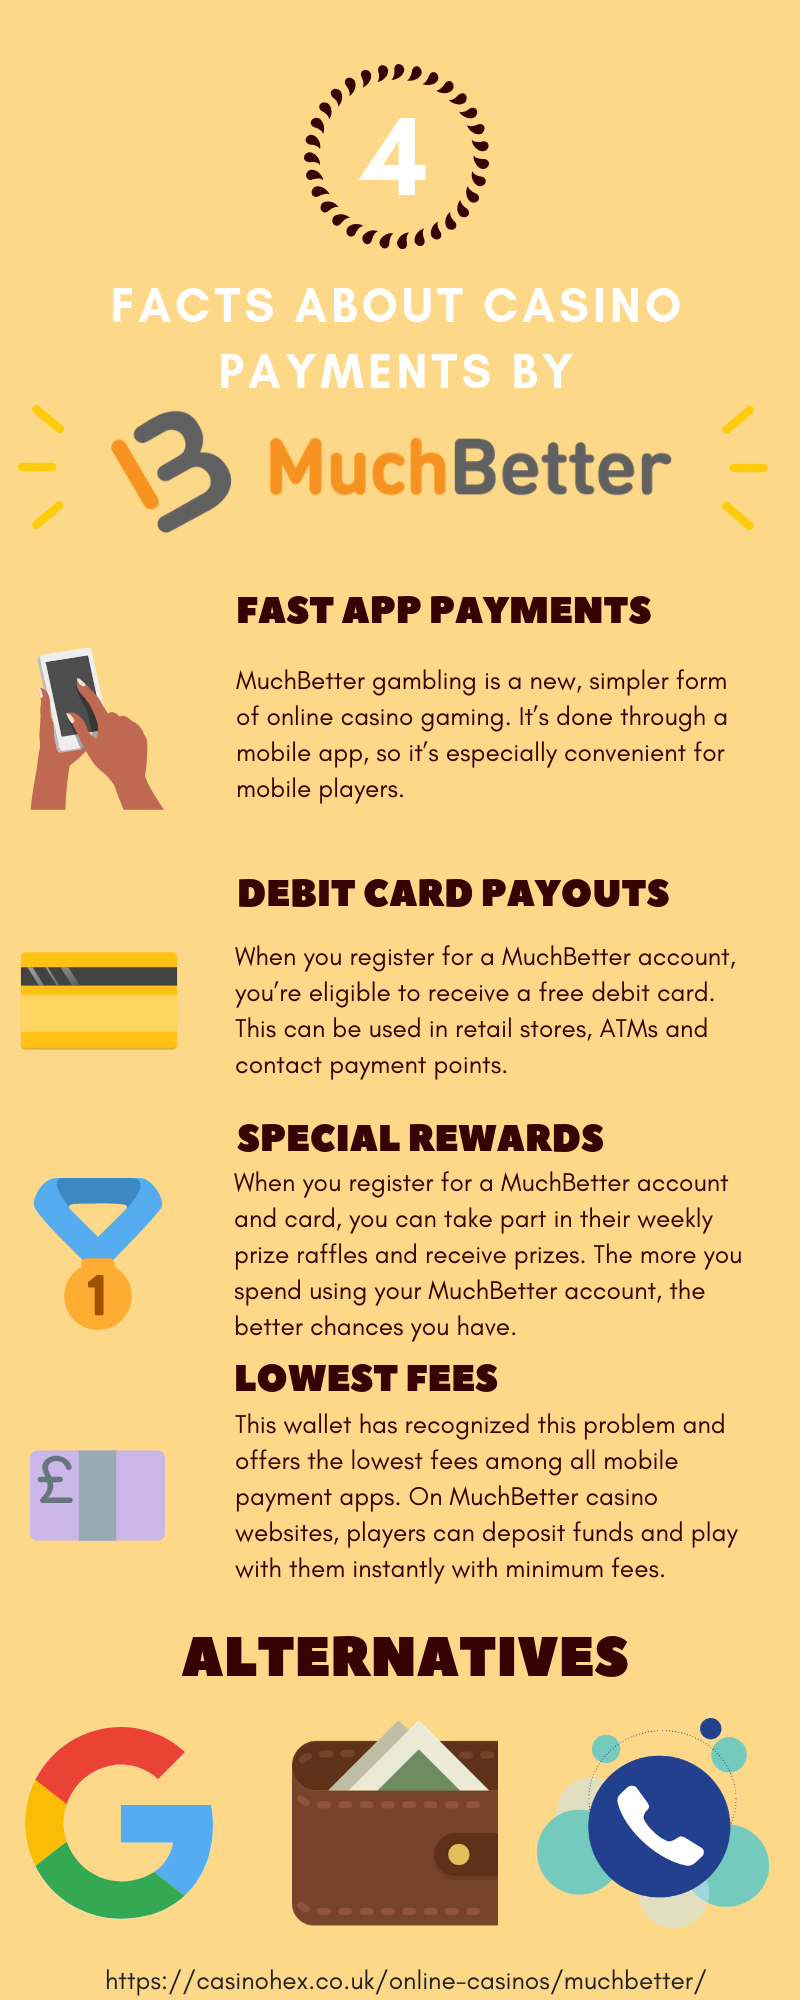 MuchBetter Payments: Mobile App Deposits